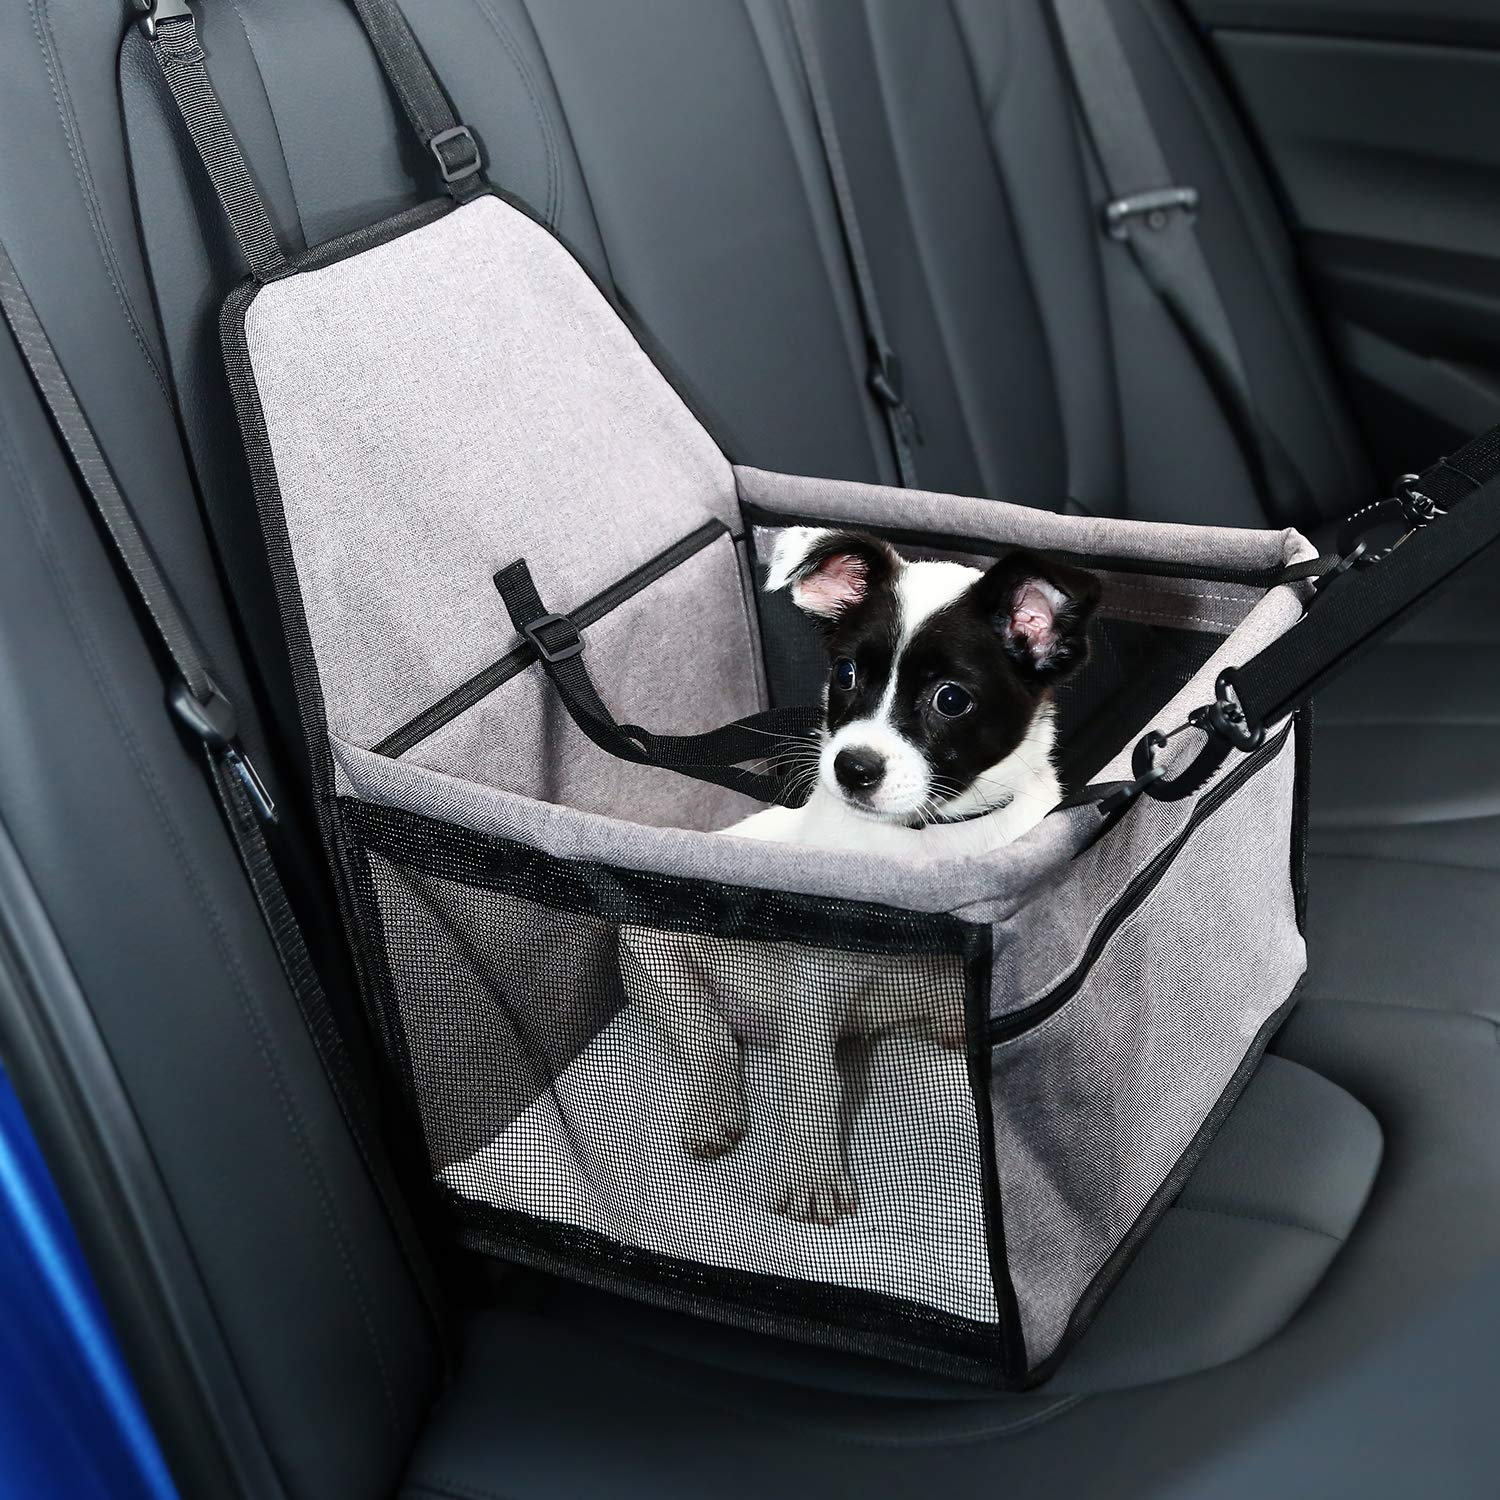 Pet Car Booster Seat for Dogs Cats Pet, Folding Pet Car Seats Cat Car Travel Safety Seat Pet Carrier Bag with Clip-On Safety Leash and Zipper Storage Pocket - KatzeTatze